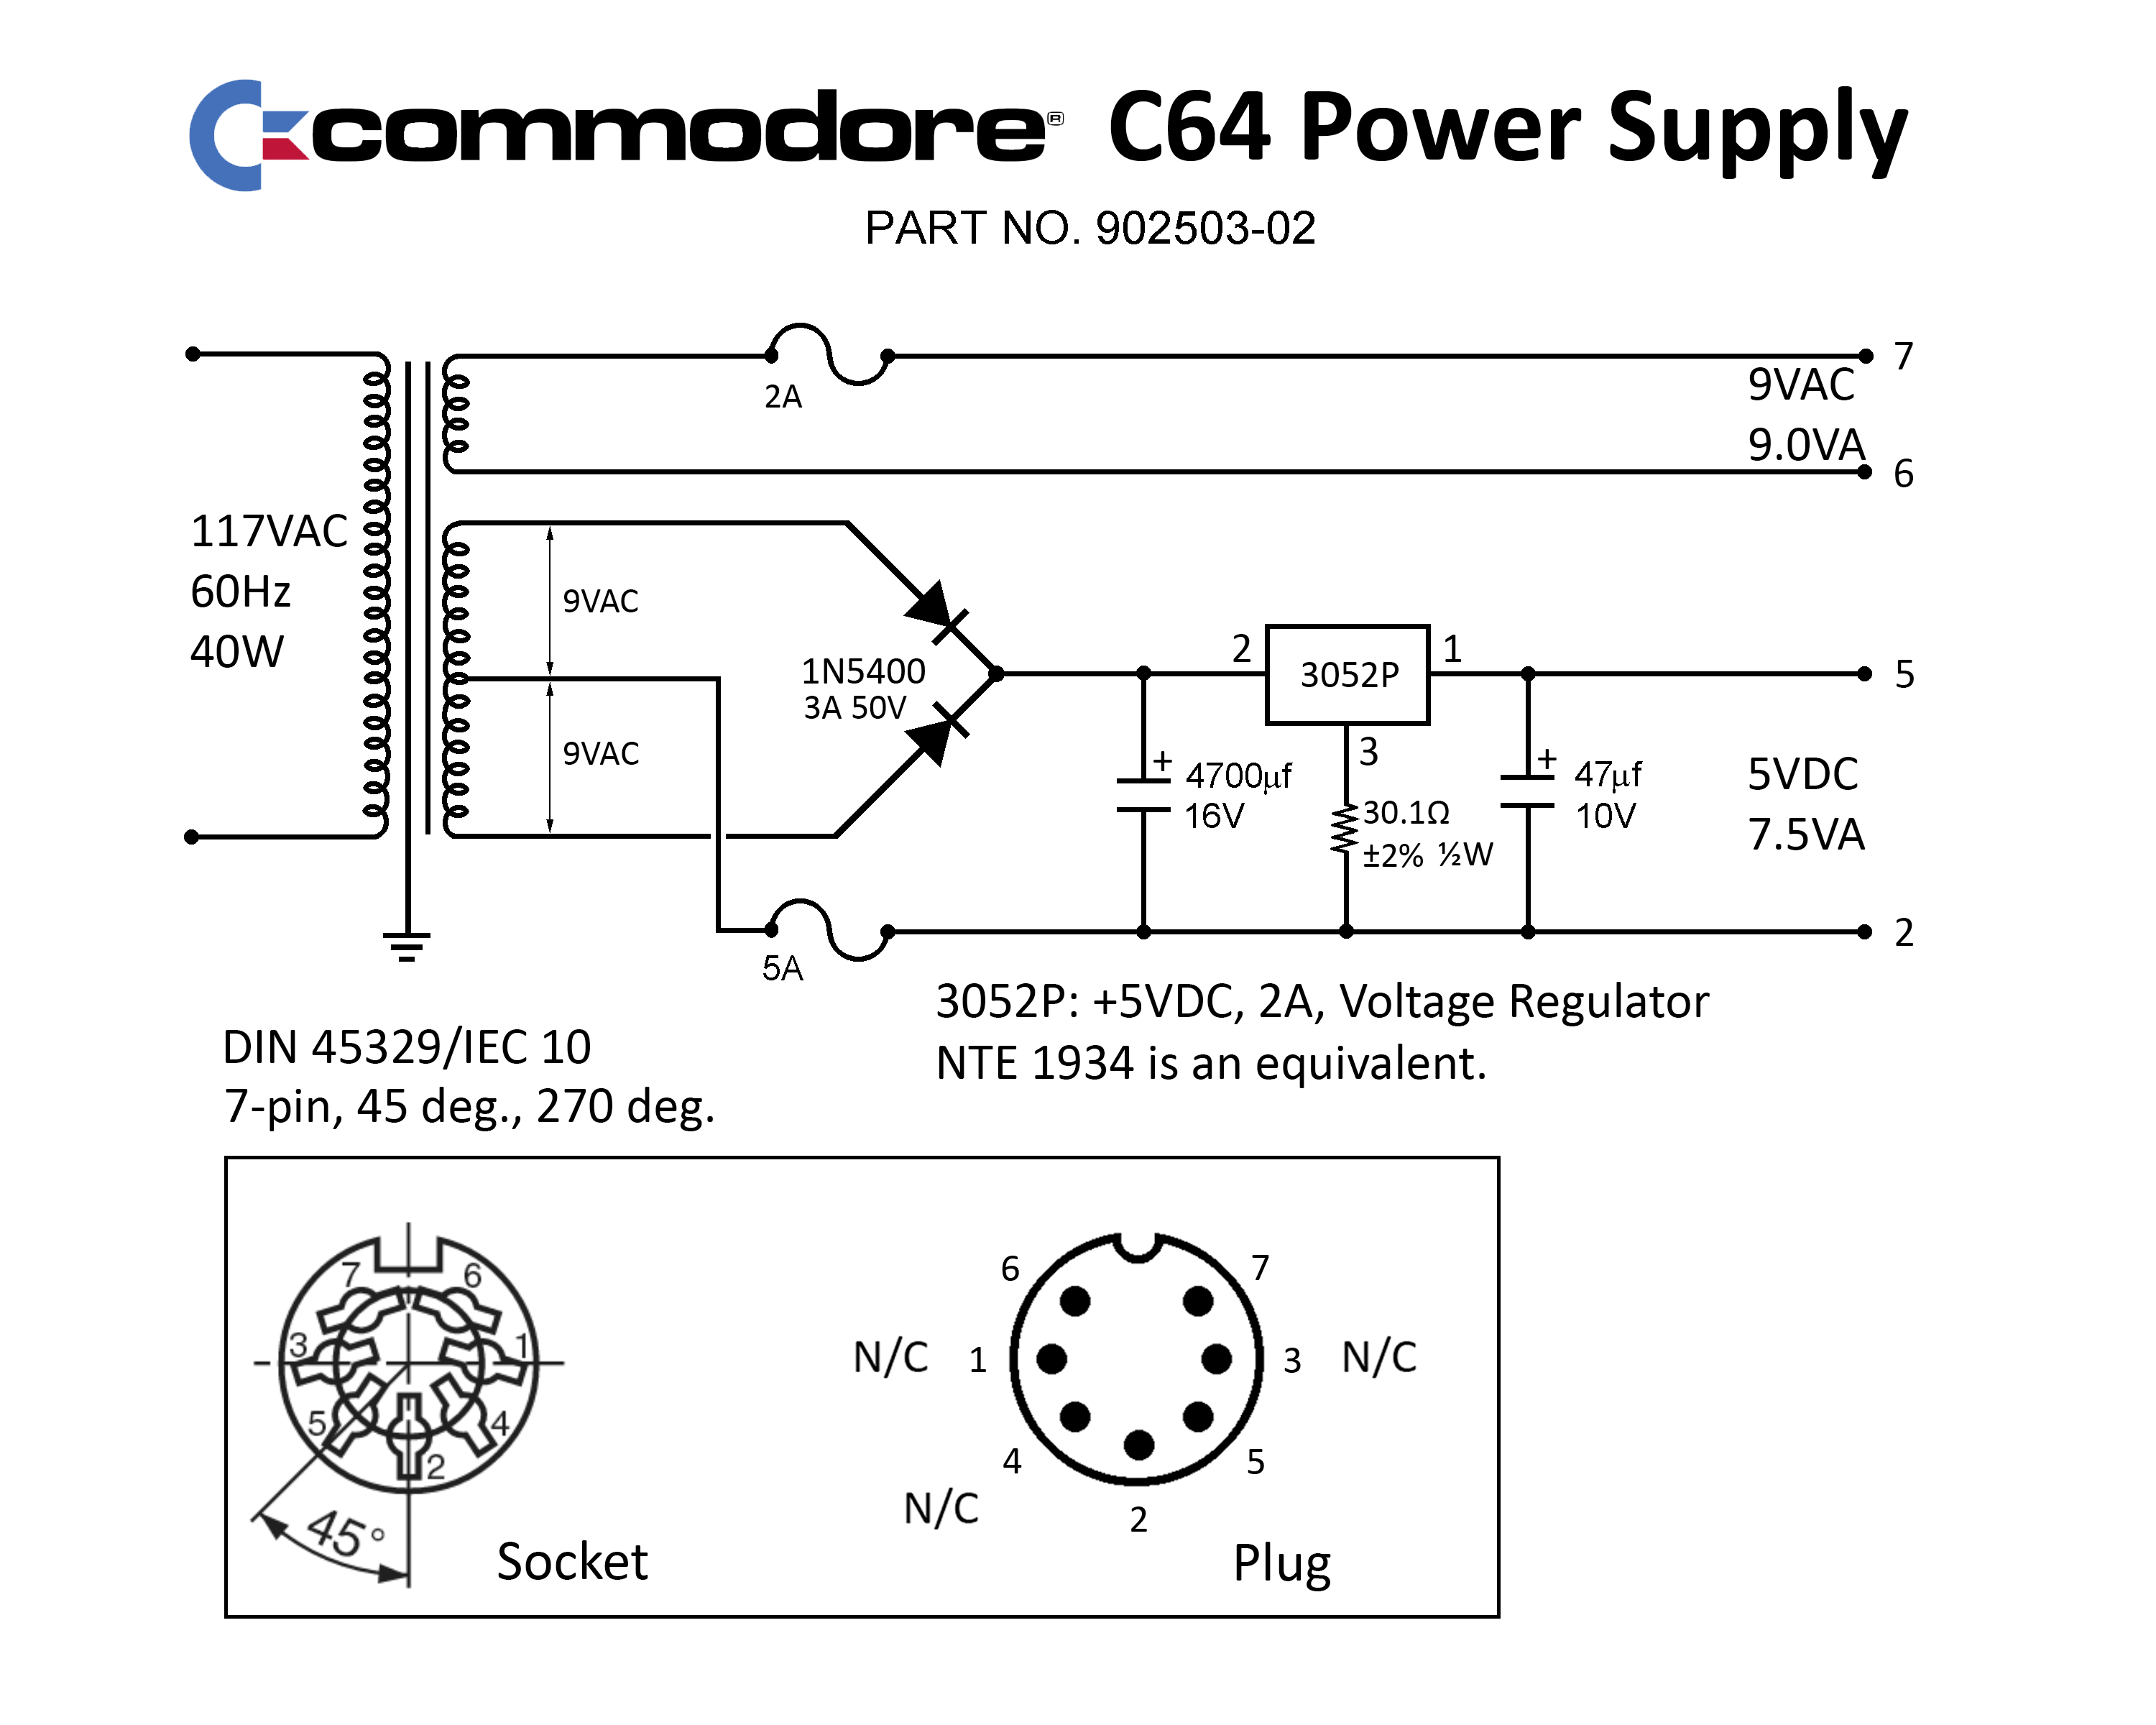 http://pdbuchan.com/commodore/c64_power_supply/c64_external_power_supply_902503-02.png